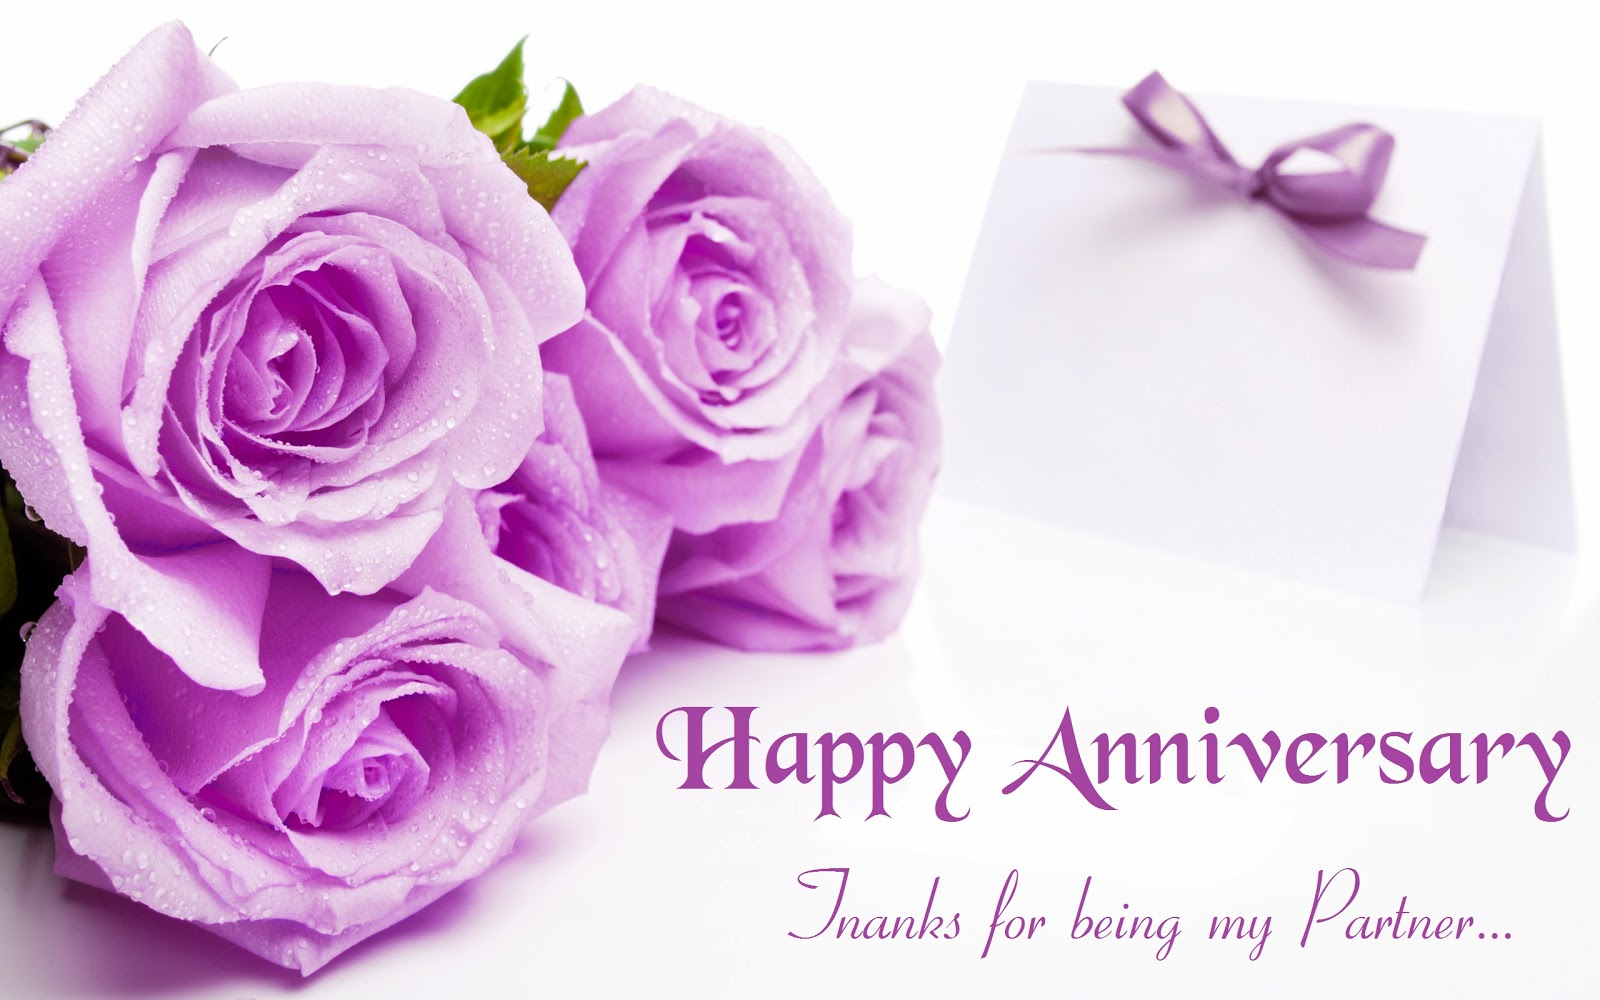 Lovely Happy Anniversary Images, Photo's, Wallpapers